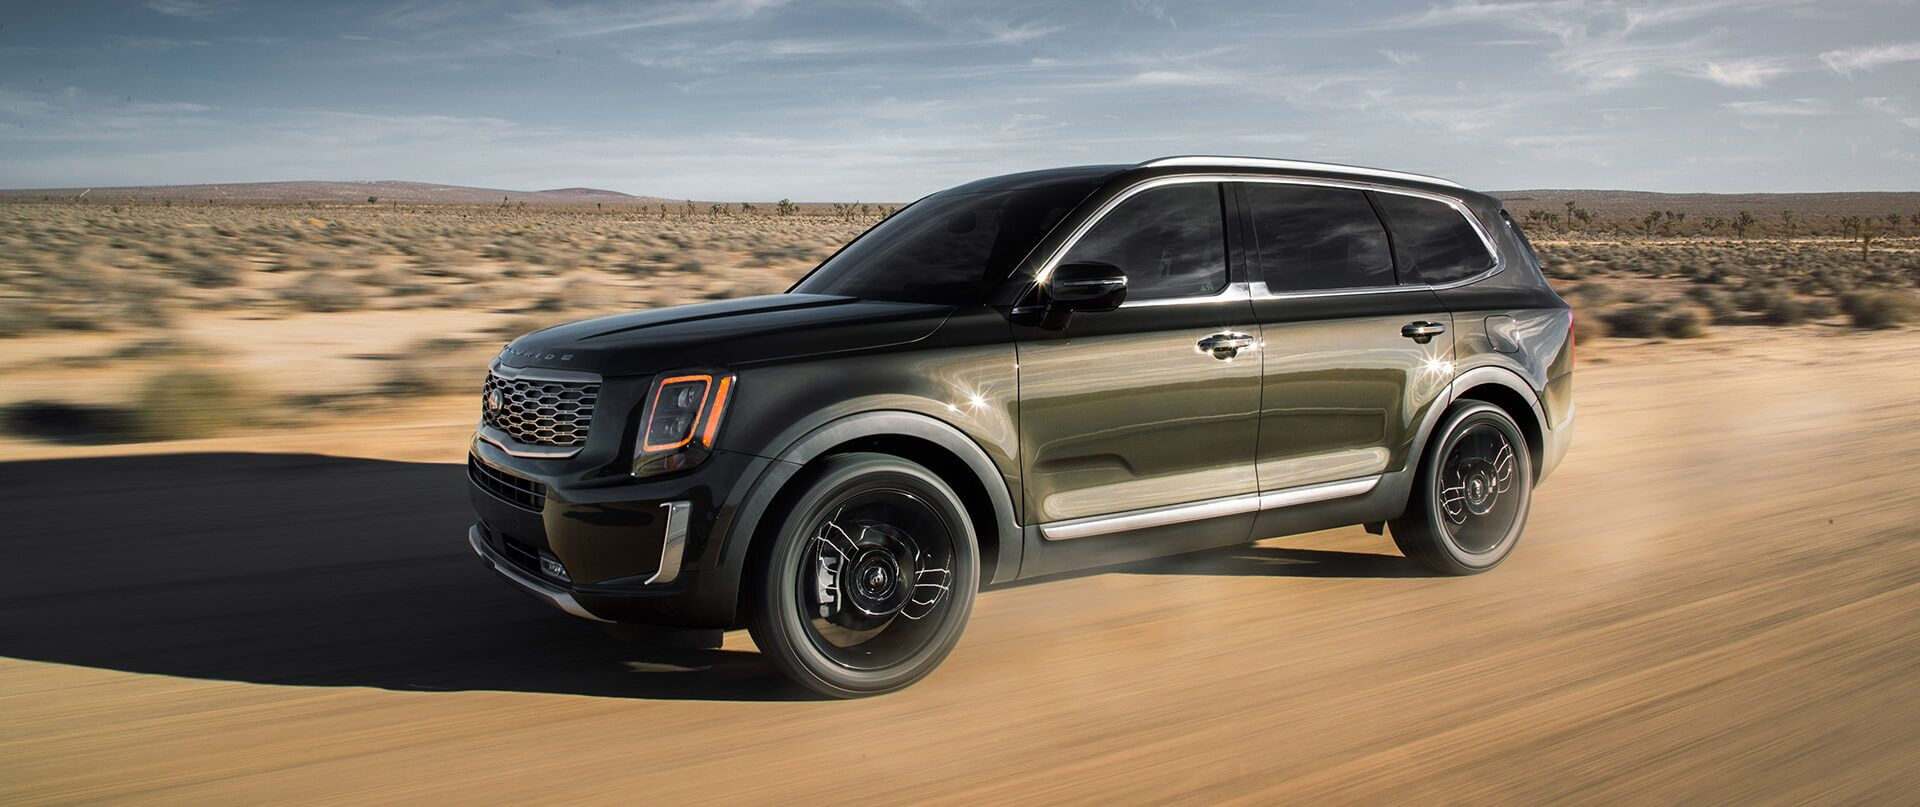 2020 Kia Telluride in Harlingen, TX